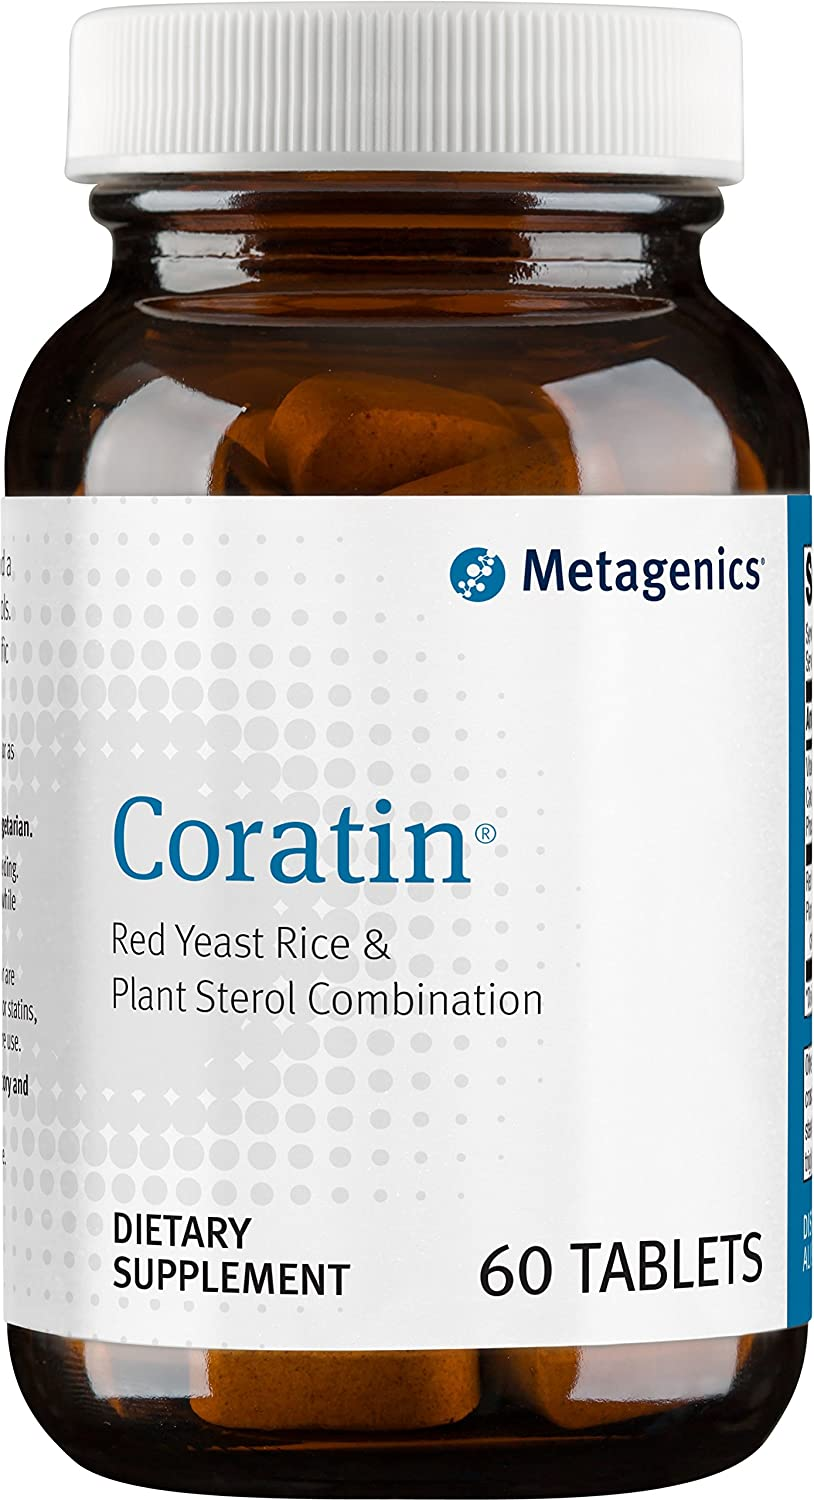 Metagenics Coratin® – Red Yeast Rice & Plant Sterol Combination – 60 servings